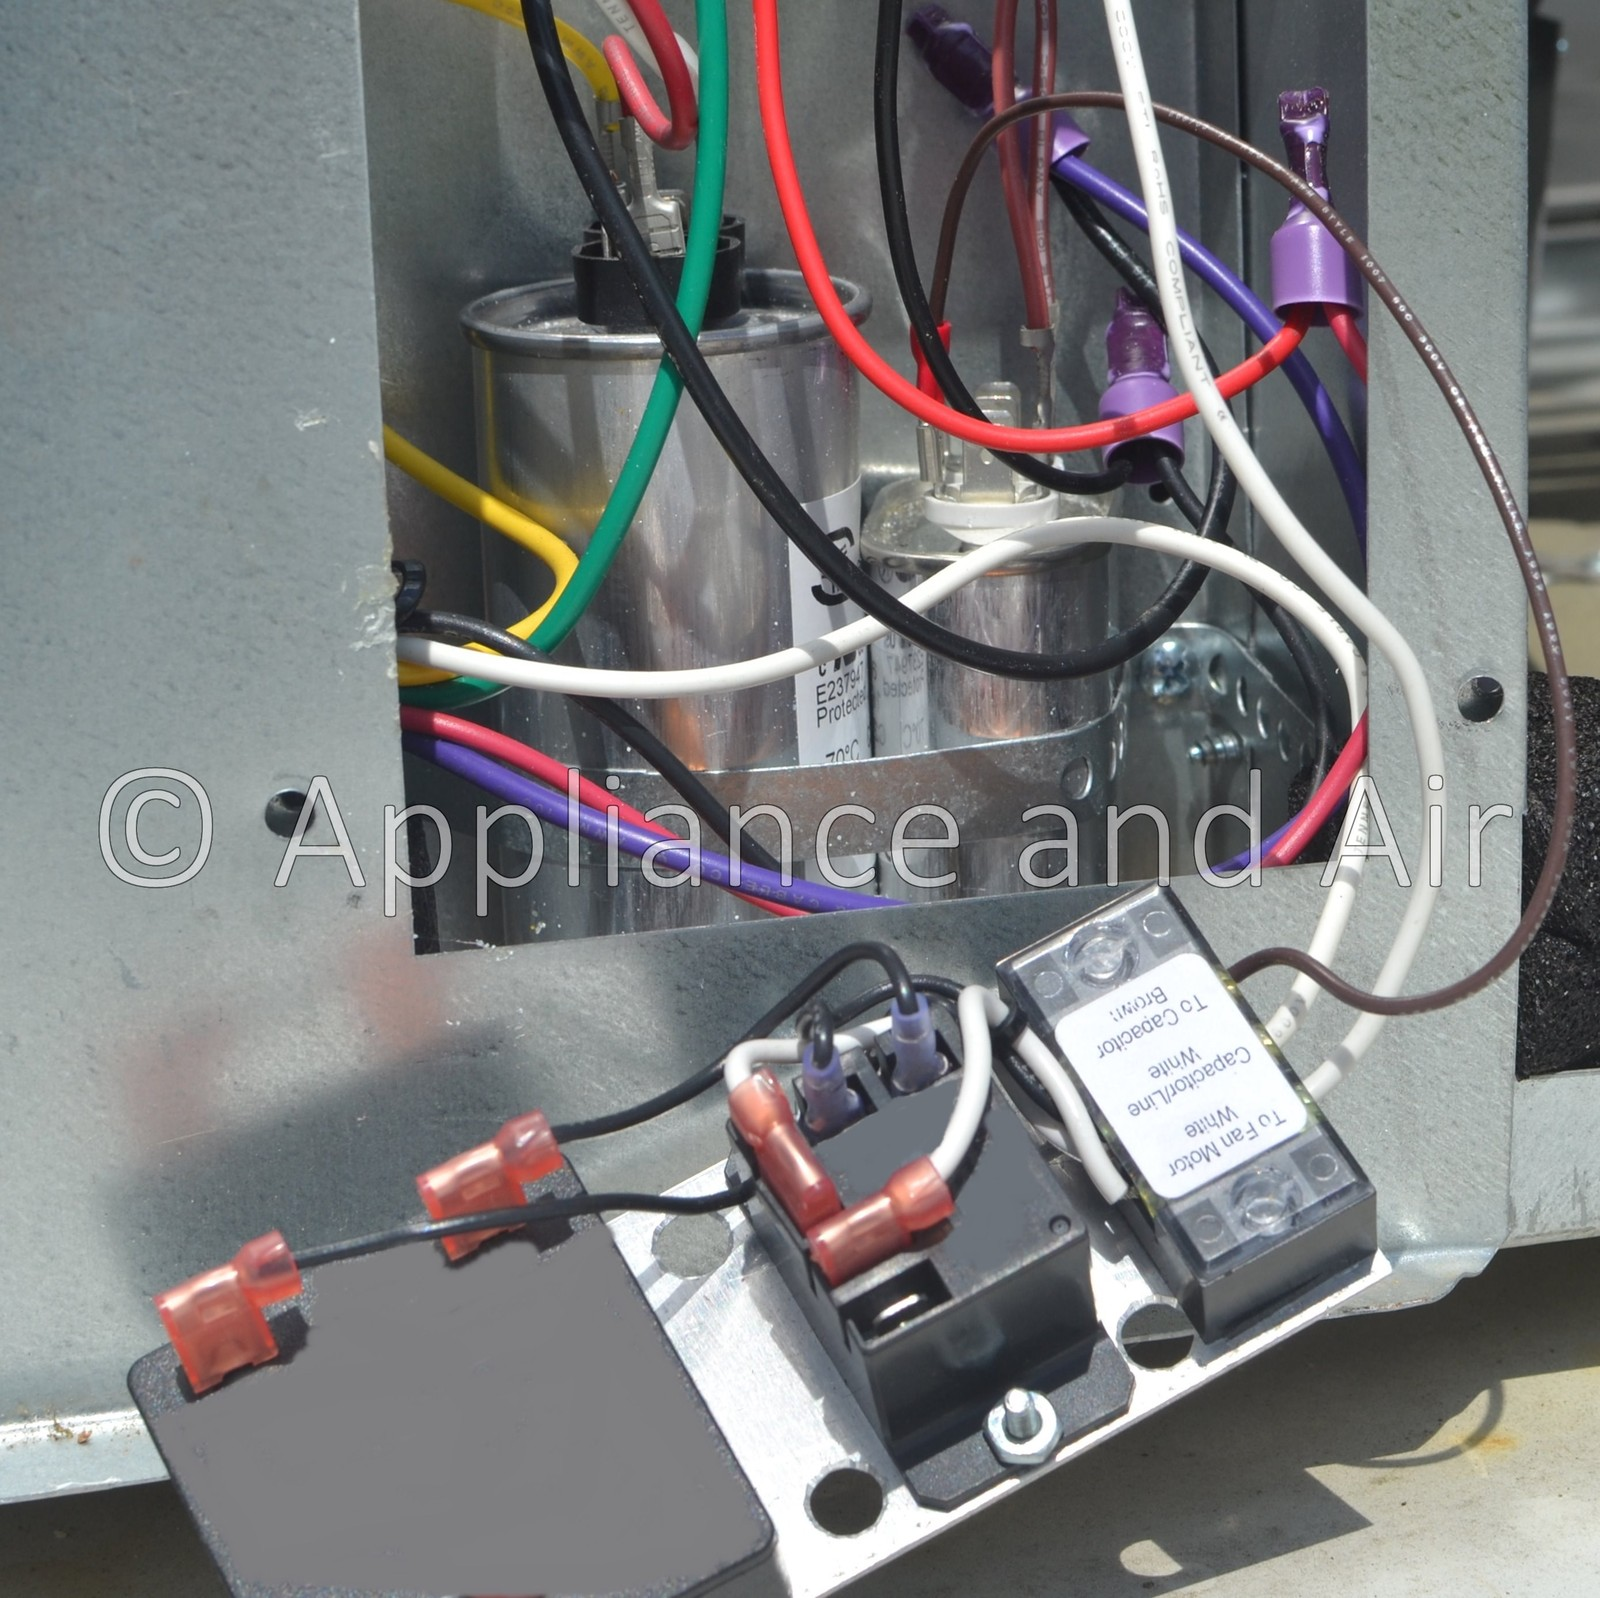 Easy start your RV A/C, Starter for Camper Rooftop Air Conditioning, SIMPLE DIY!